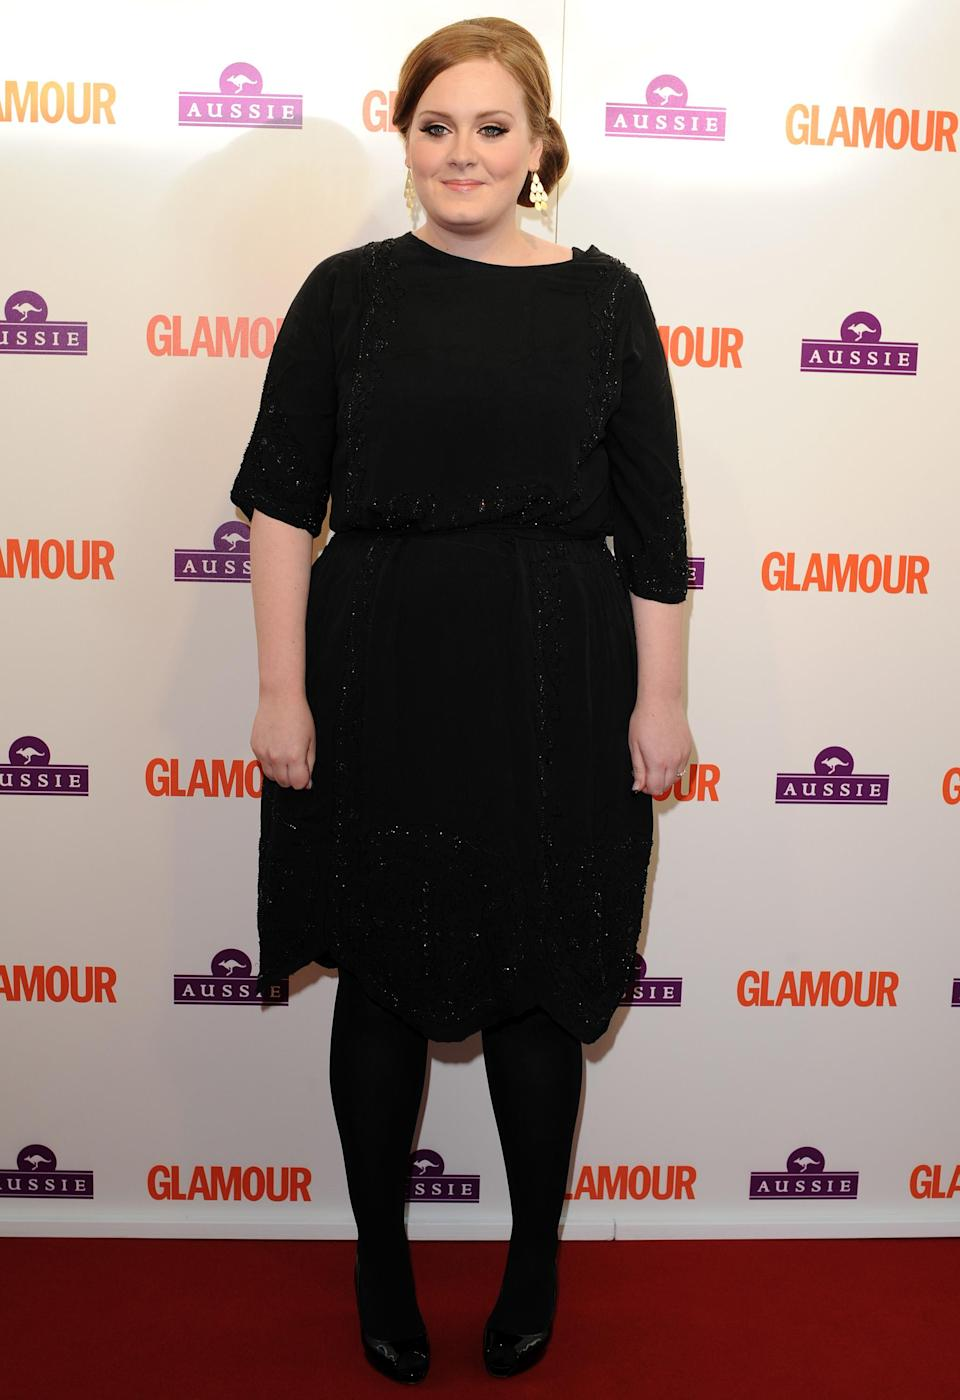 Adel attends the 2009 Glamour Woman of the Year Awards in London. - Credit: SplashNews.com